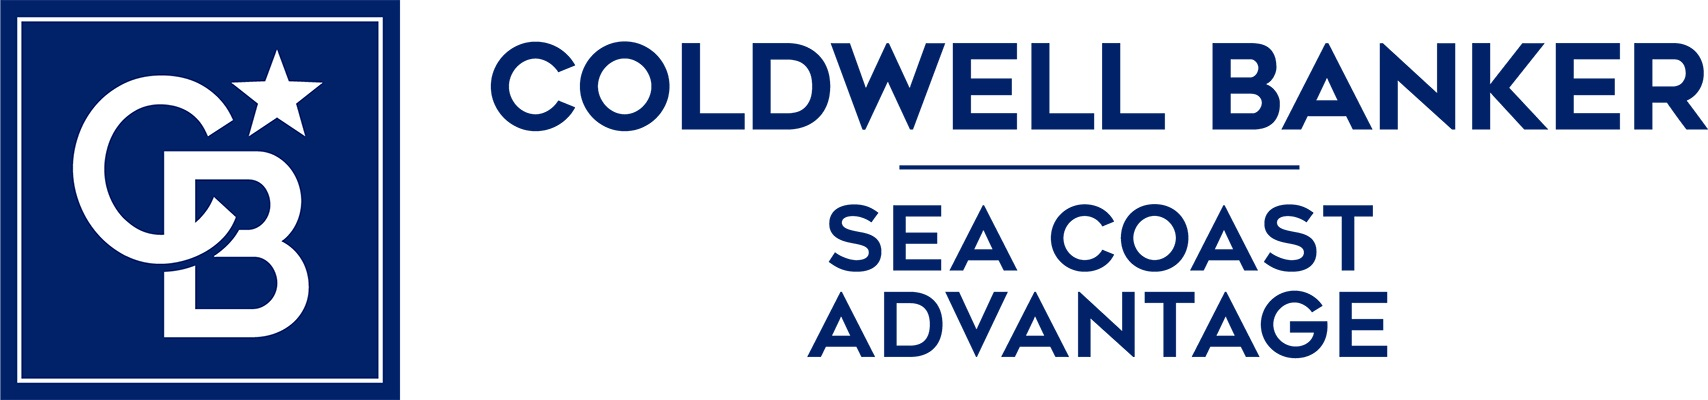 Madison Preble - Coldwell Banker Sea Coast Advantage Realty Logo